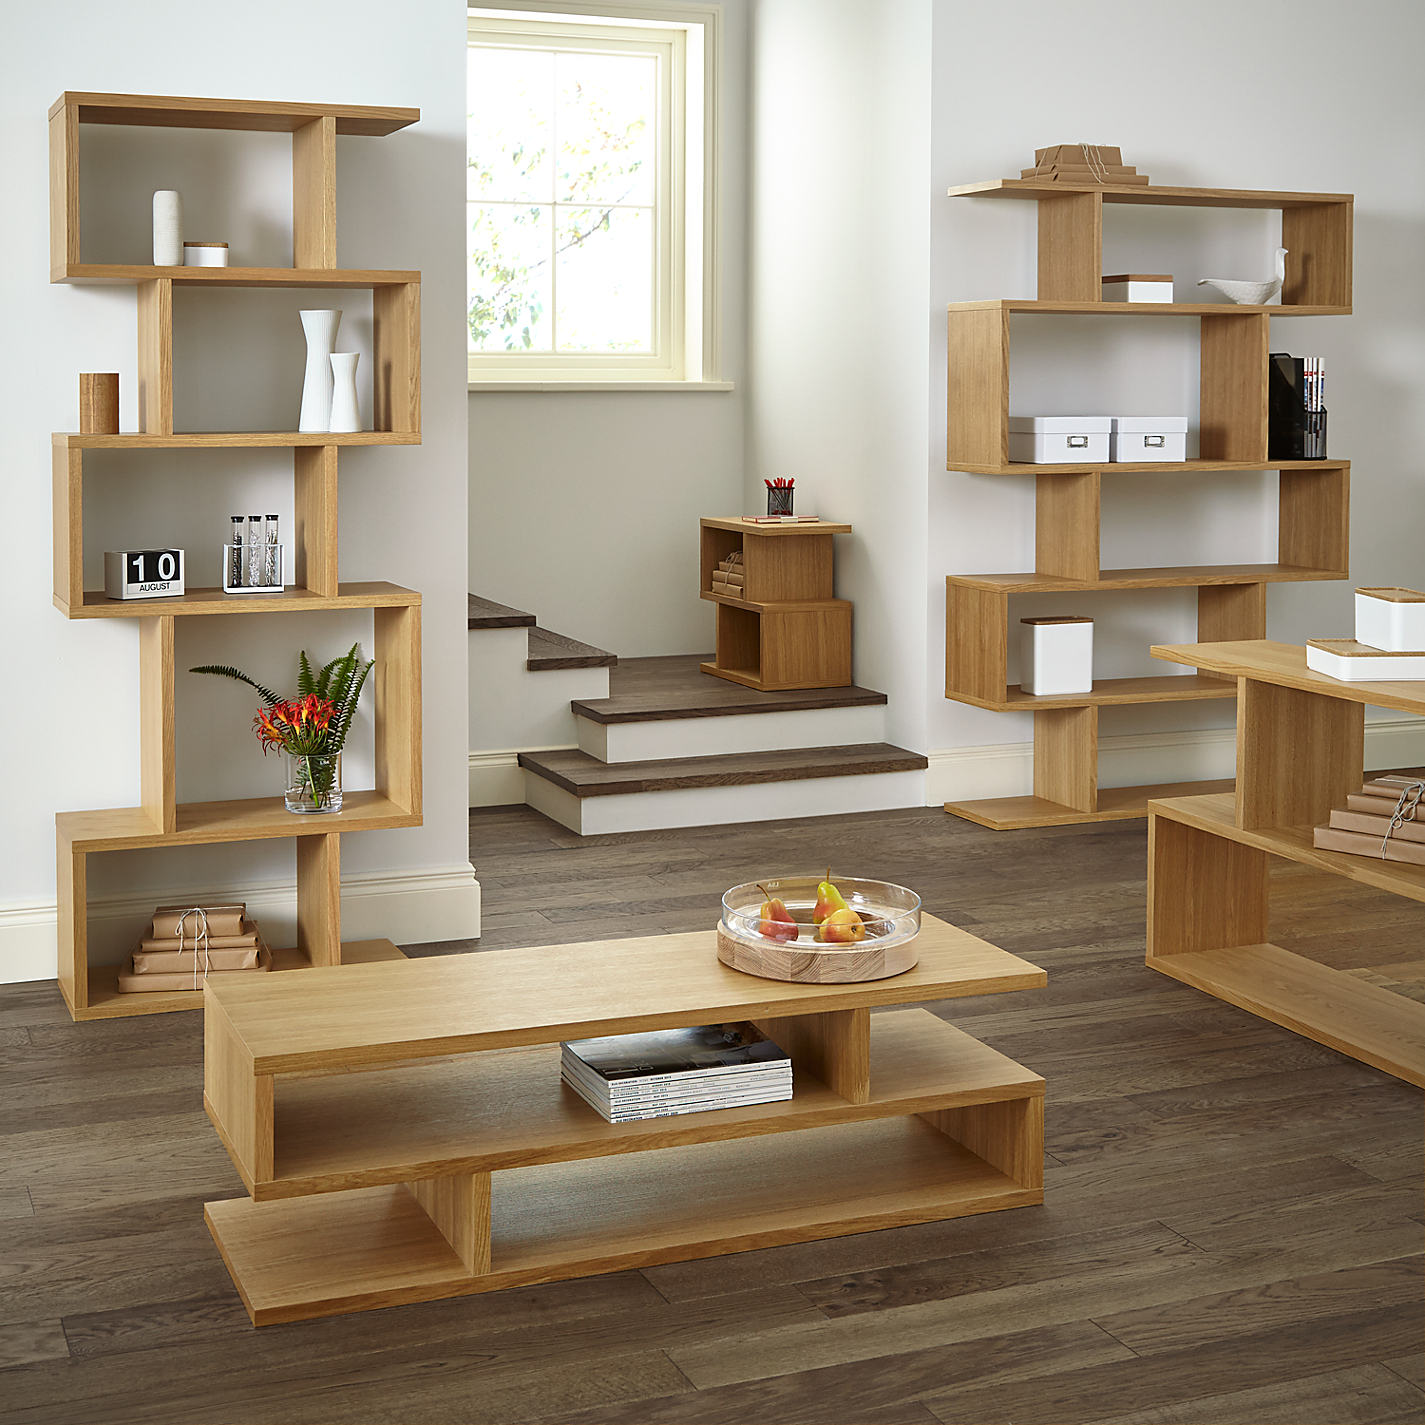 Buy Content By Terence Conran Balance Tall Shelving Online At Johnlewis